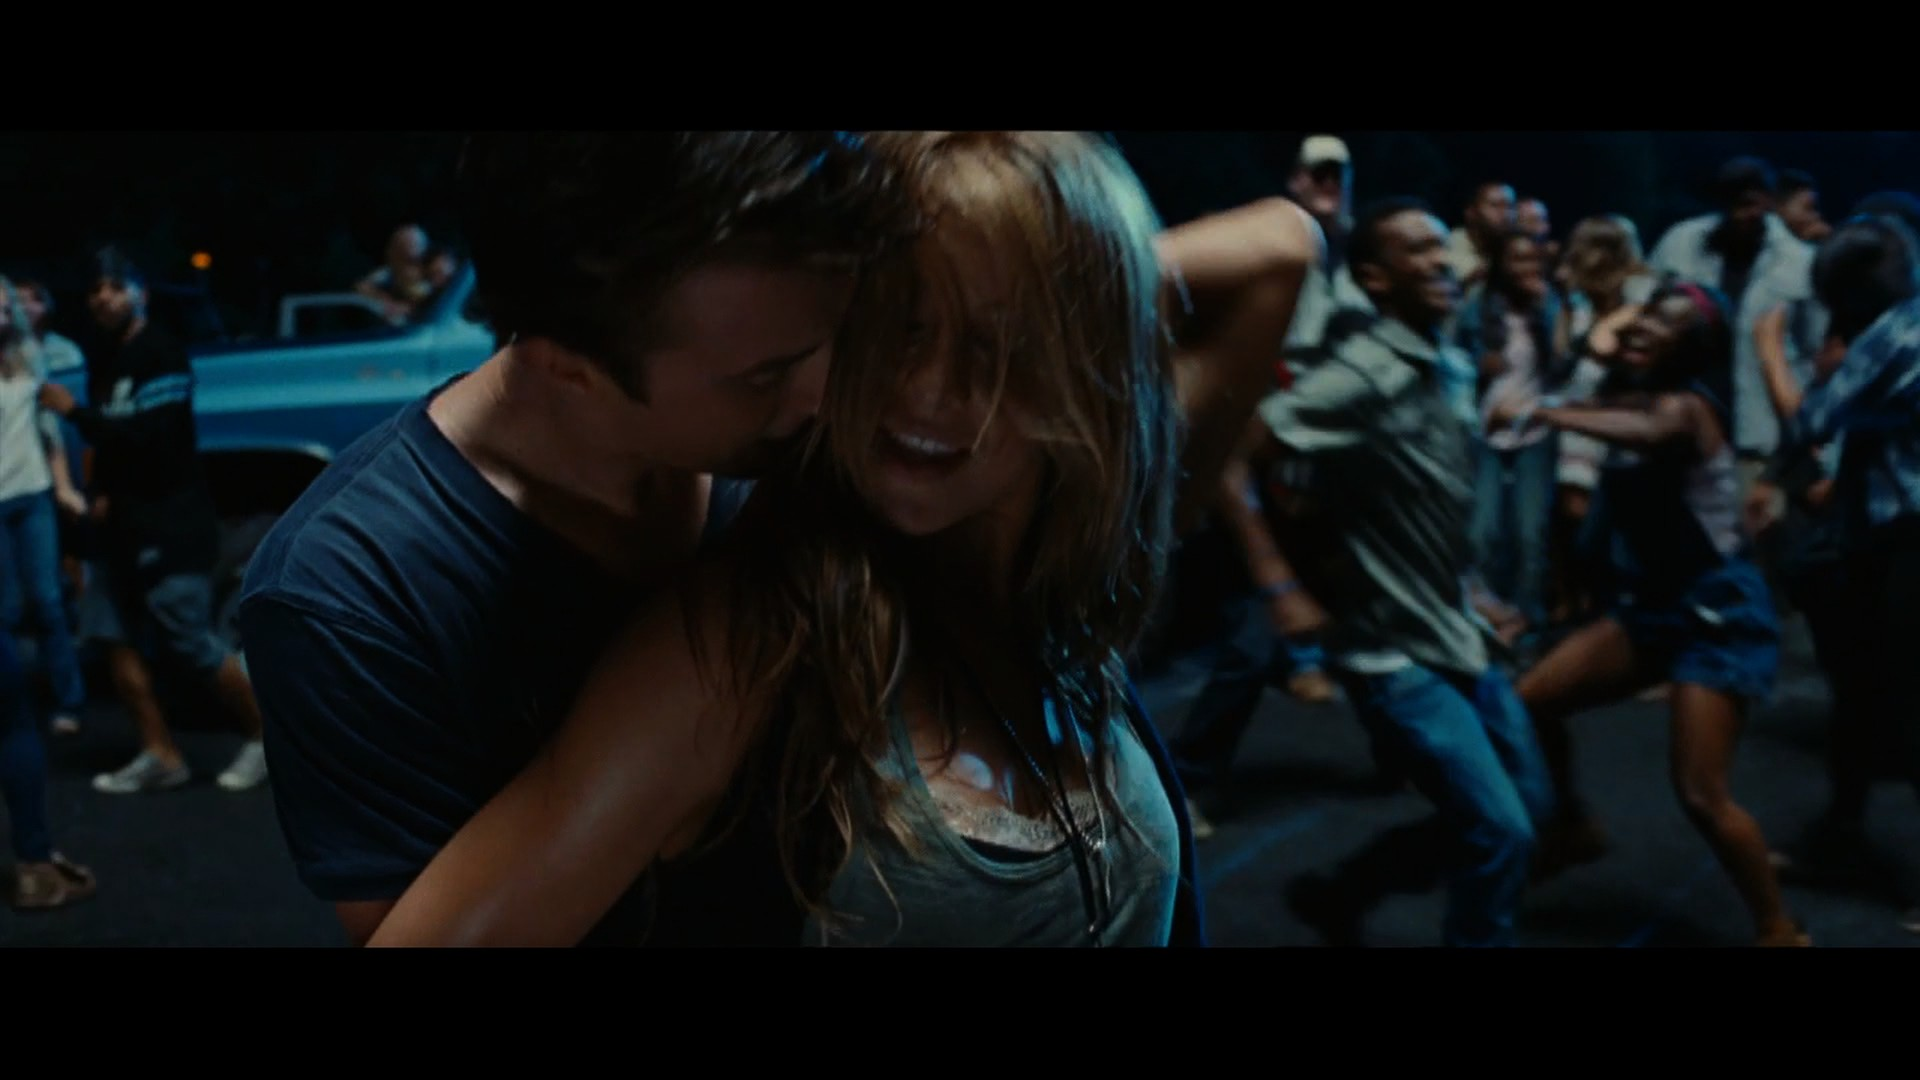 Julianne Hough & Kenny Wormald